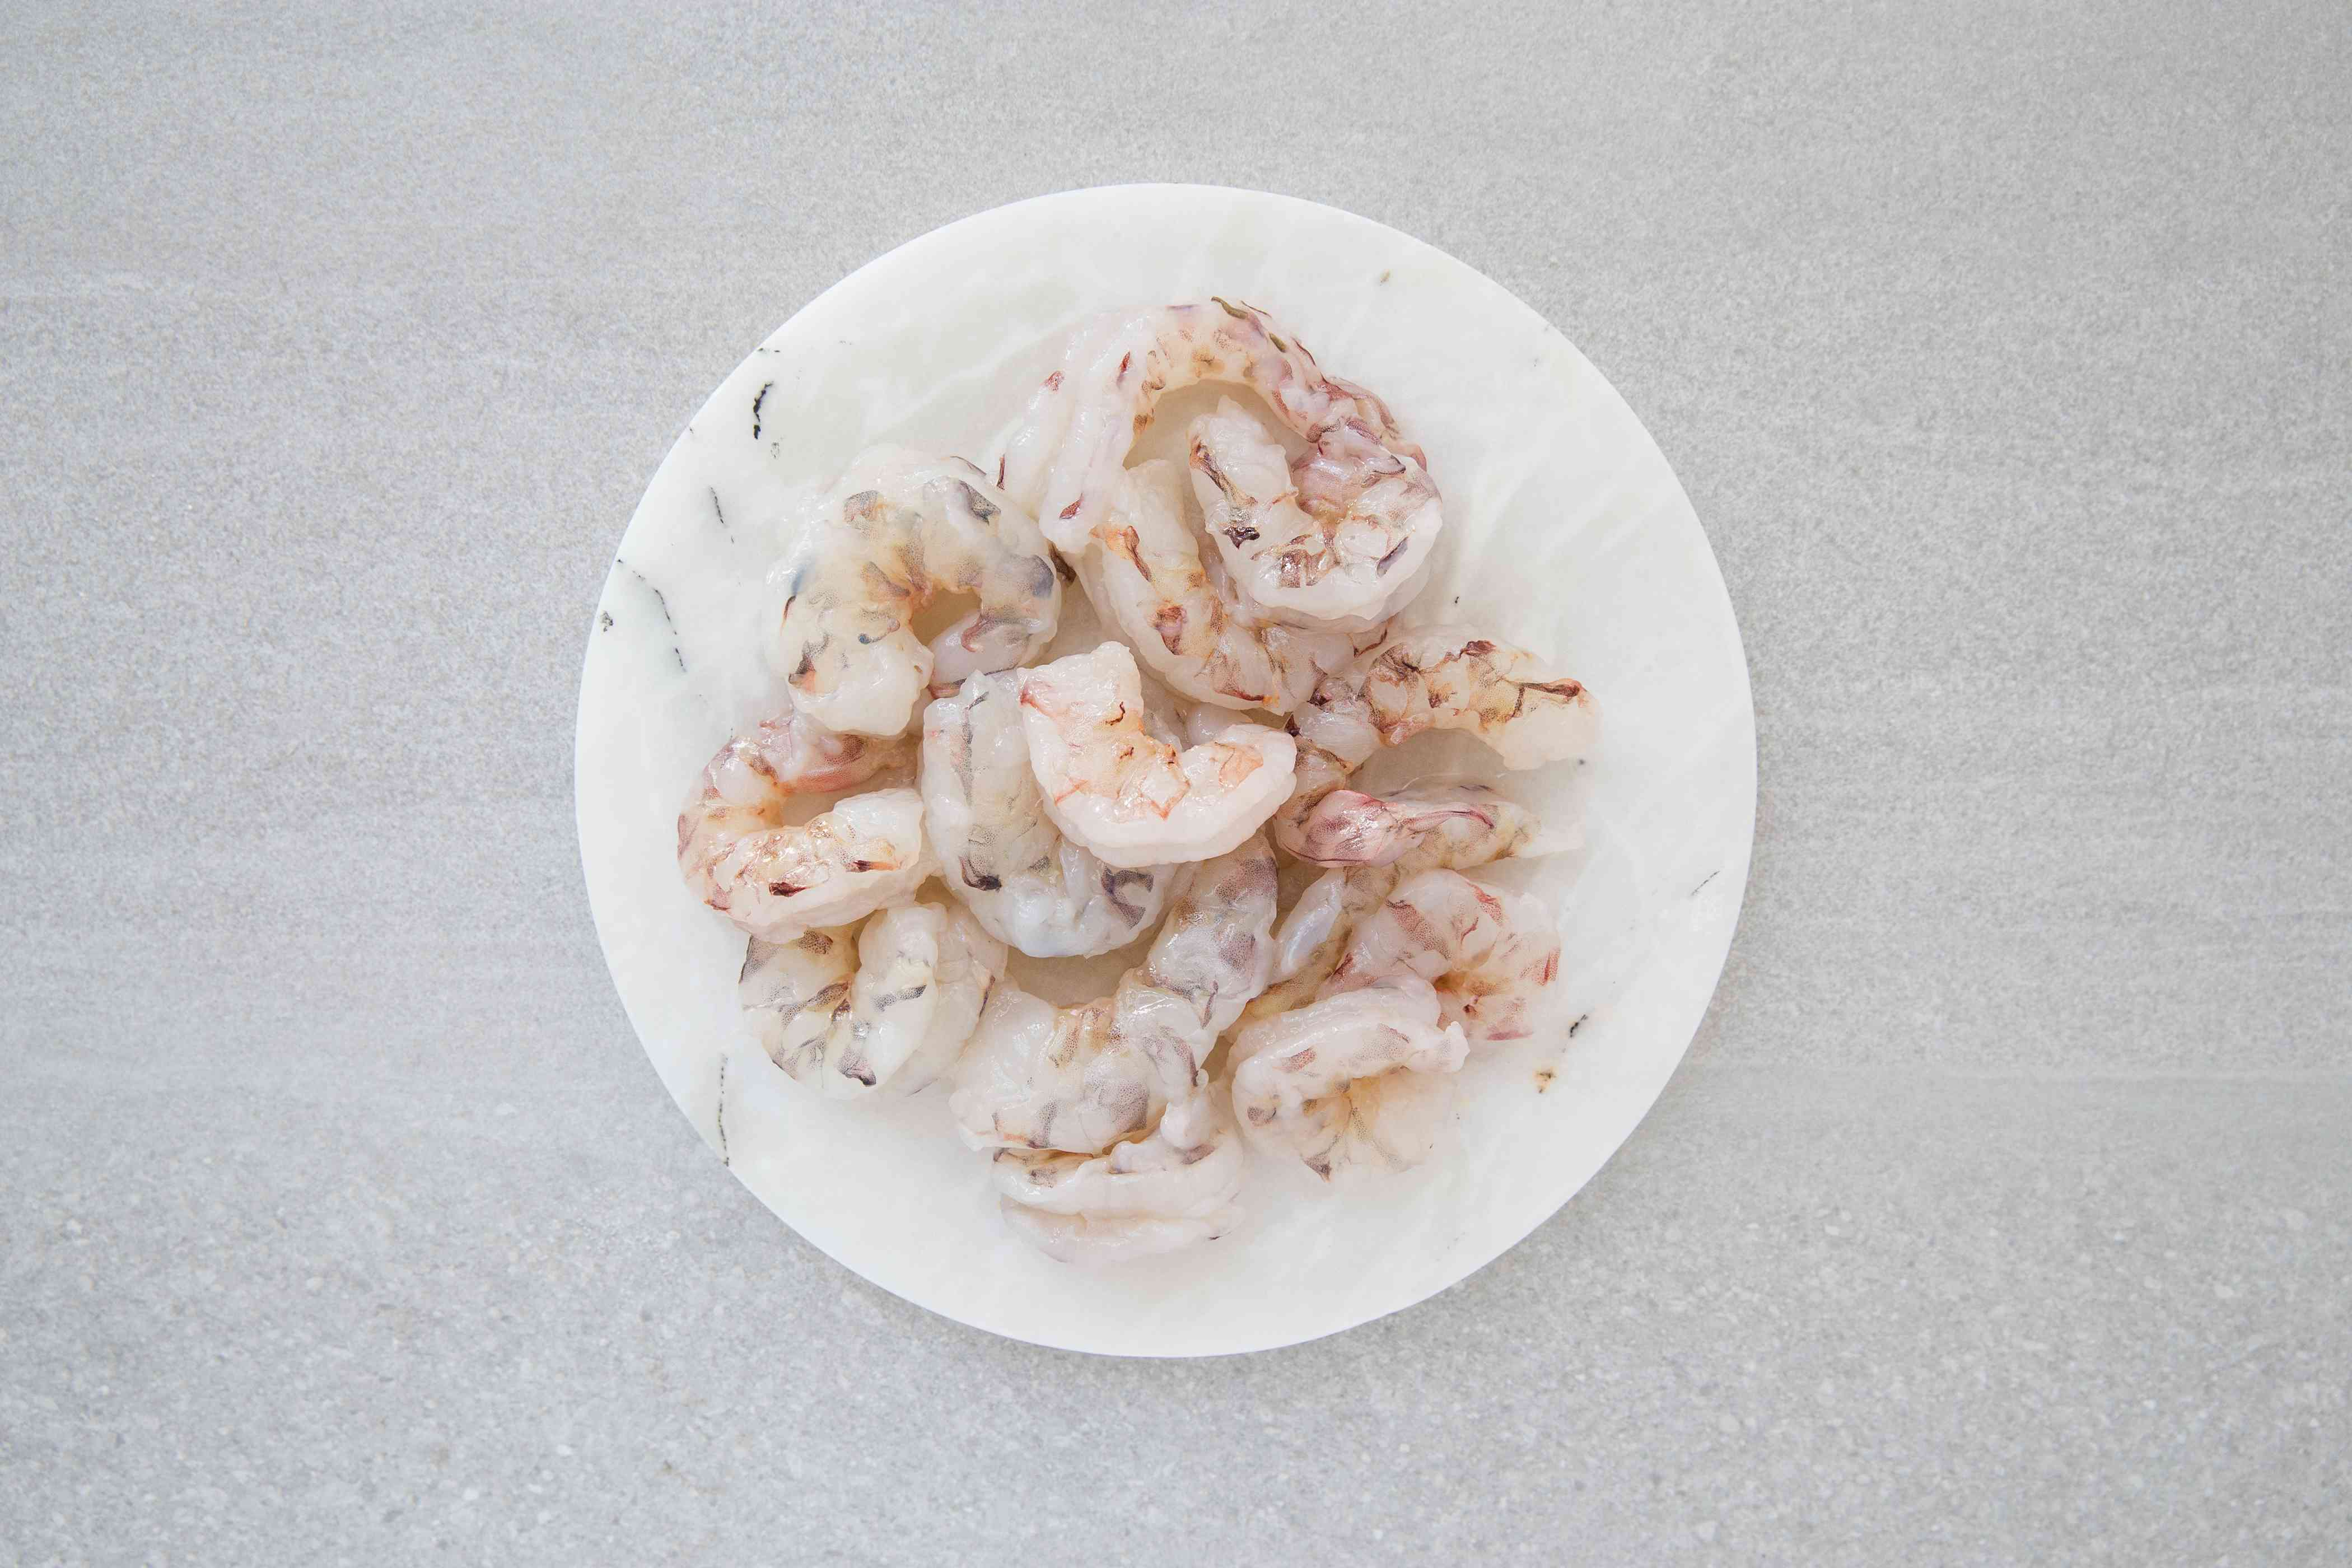 Rinse the shrimp and pat dry